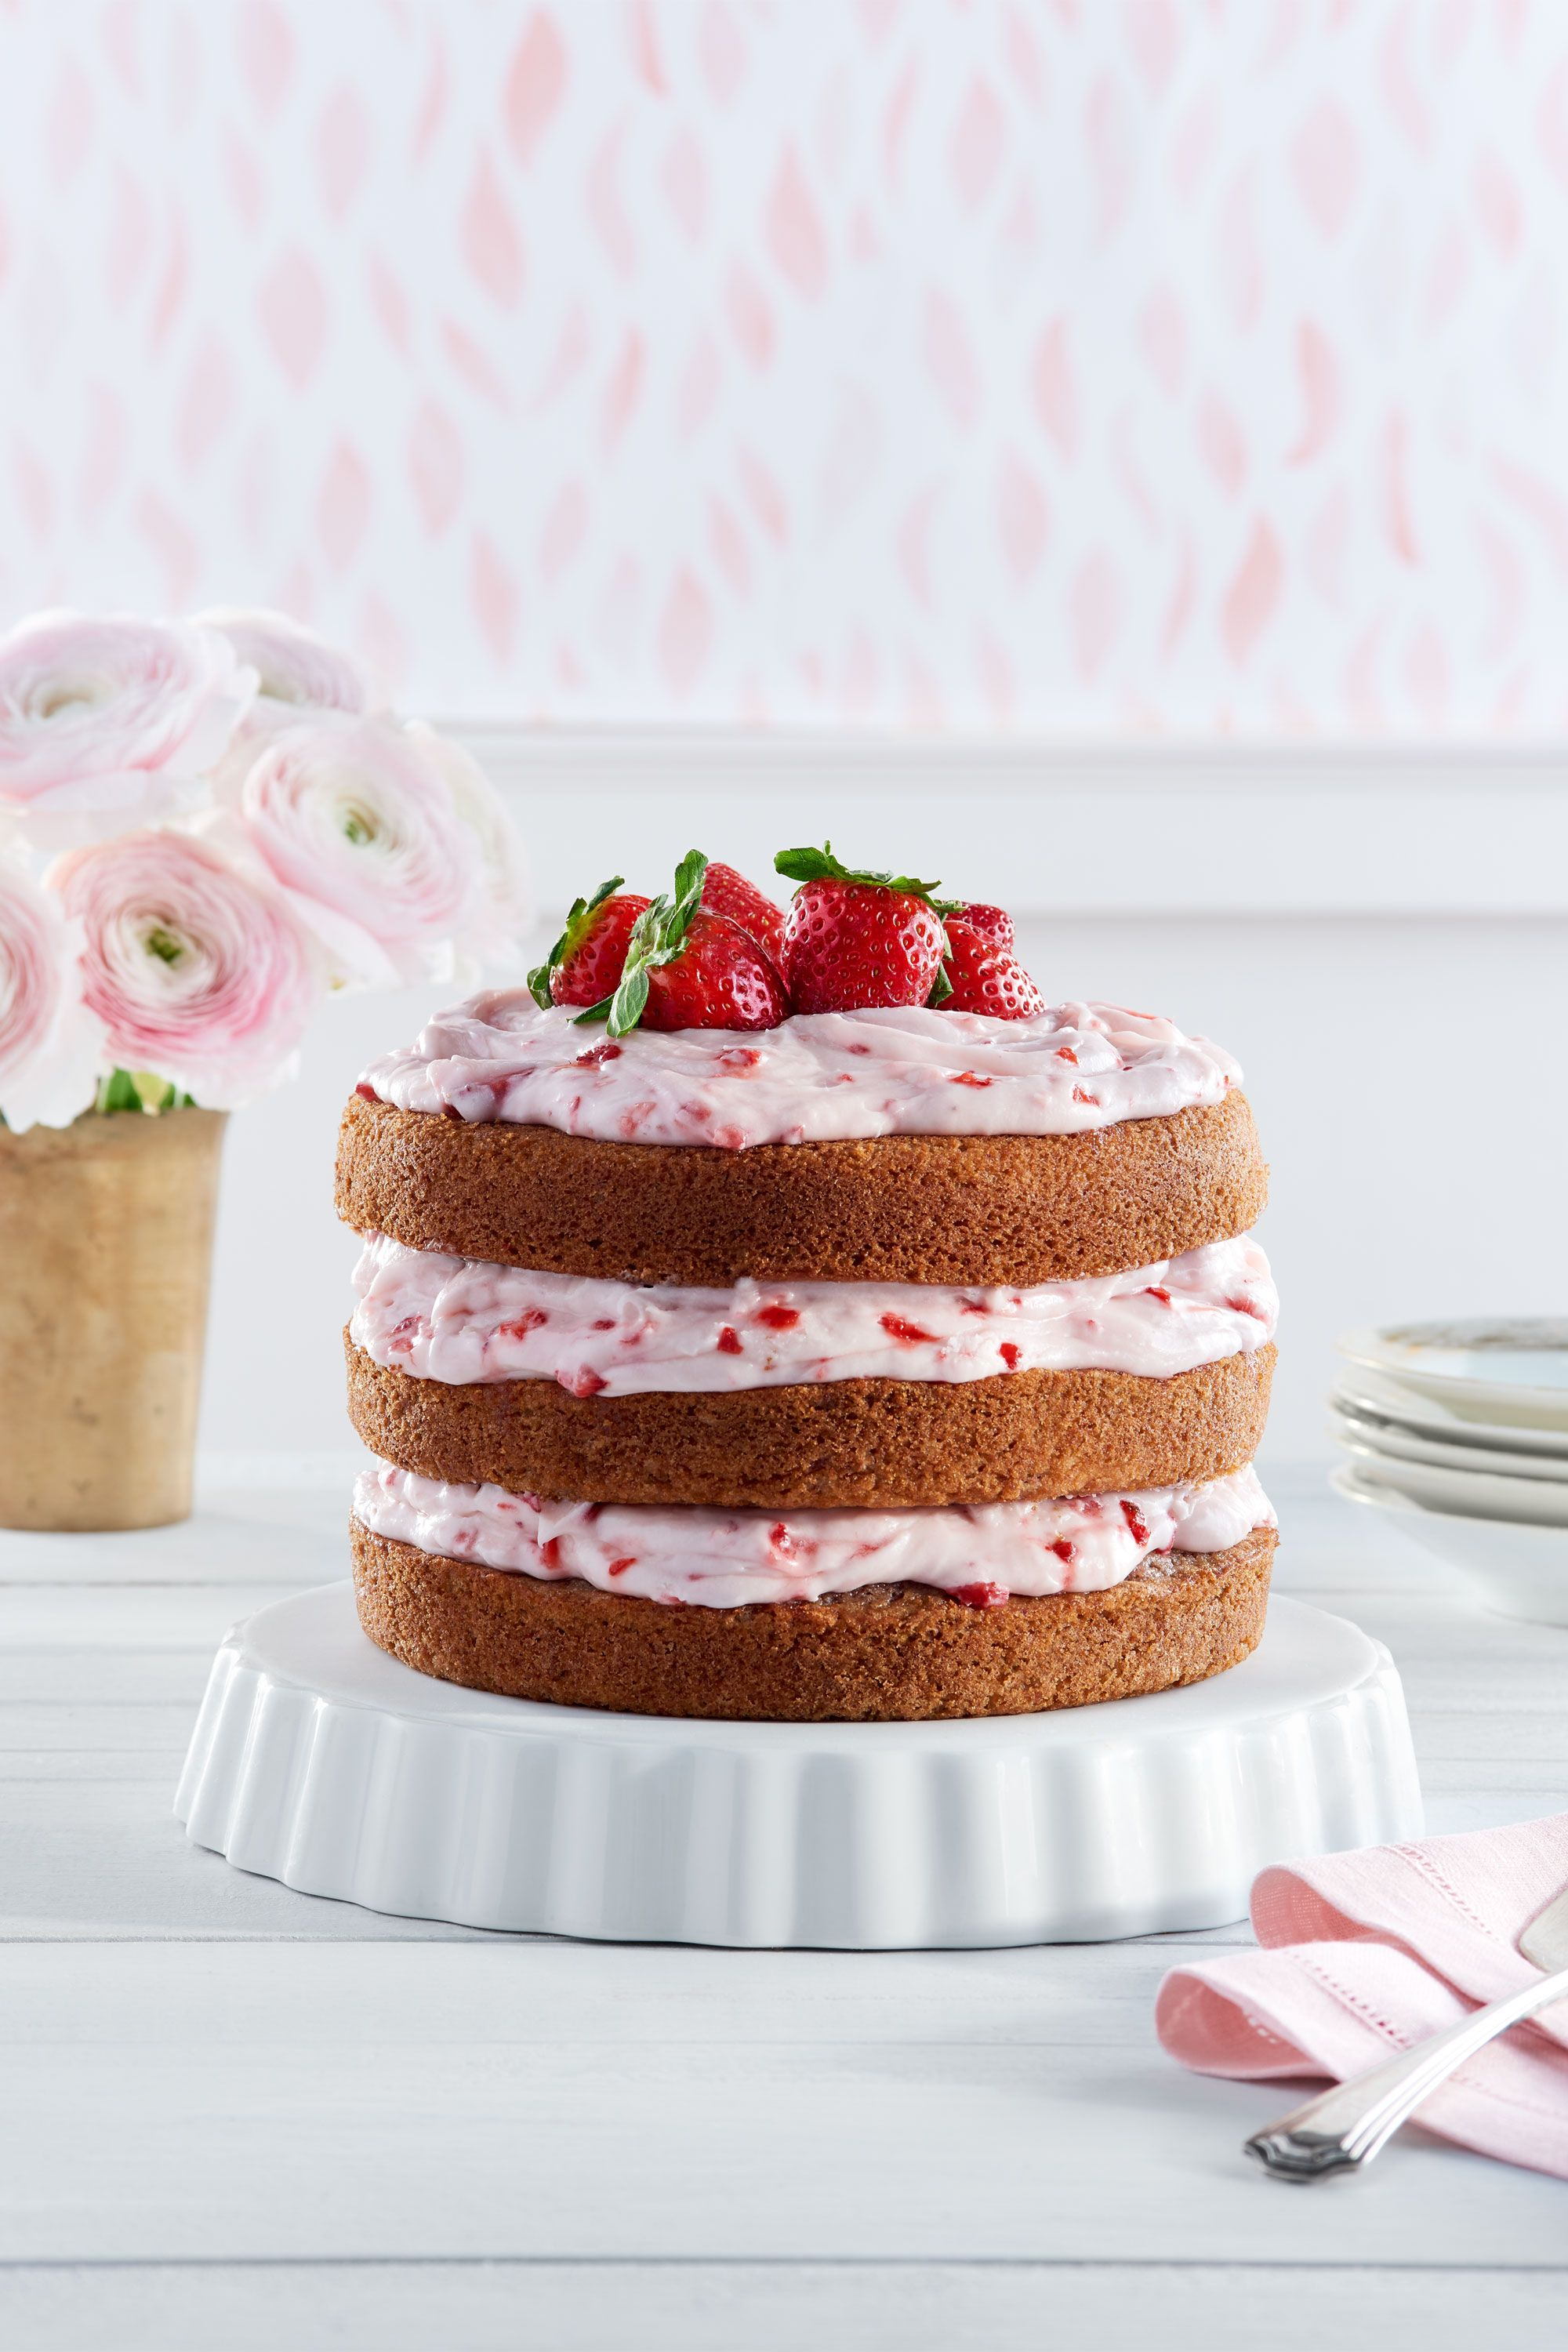 Brian Woodcock & Strawberry Limeade Cake with Strawberry Cream Cheese Frosting